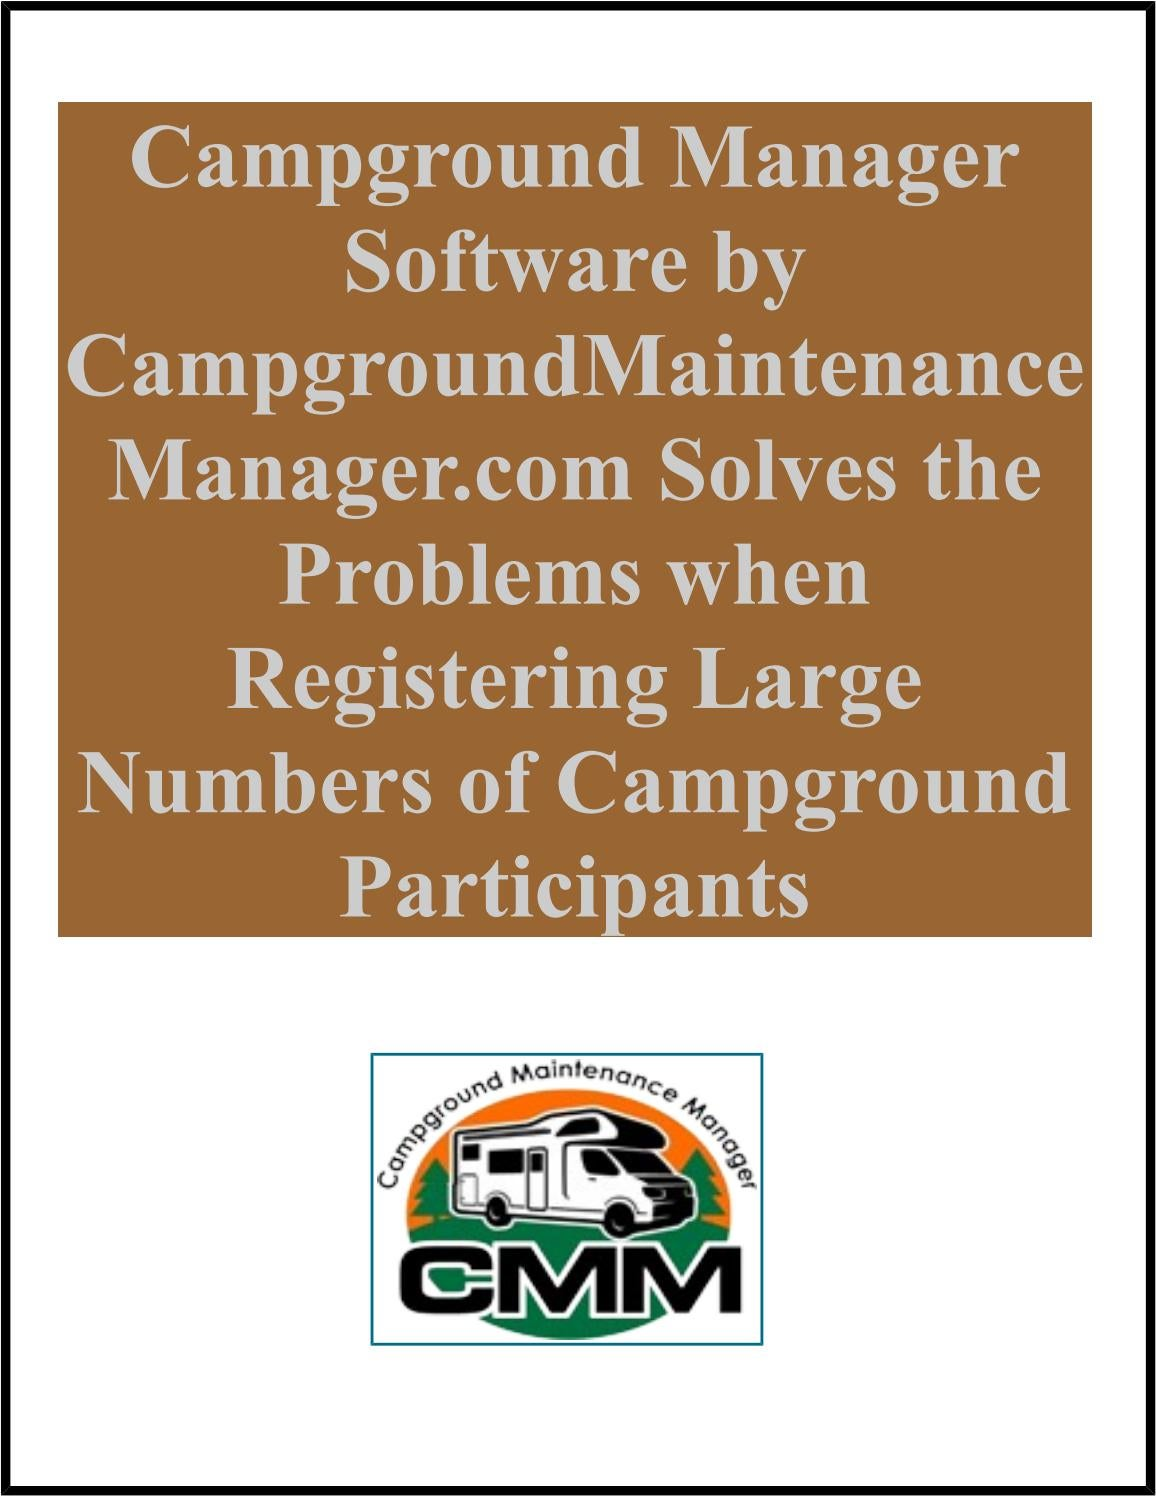 campground manager software solves the problems when registering by campground maintenance manager issuu - Campground Manager